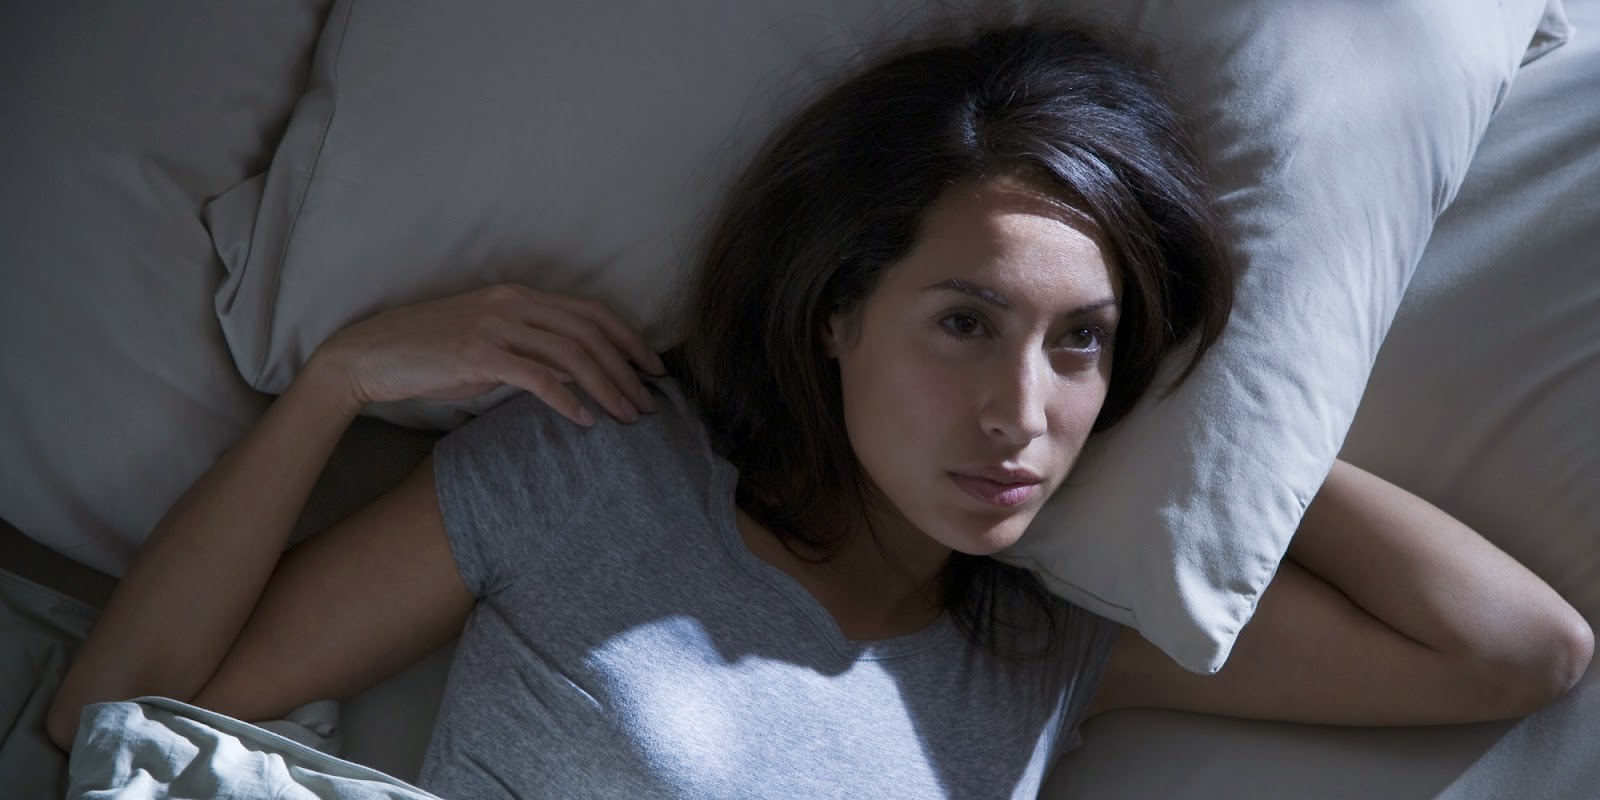 The Best Medication for Insomnia and Anxiety